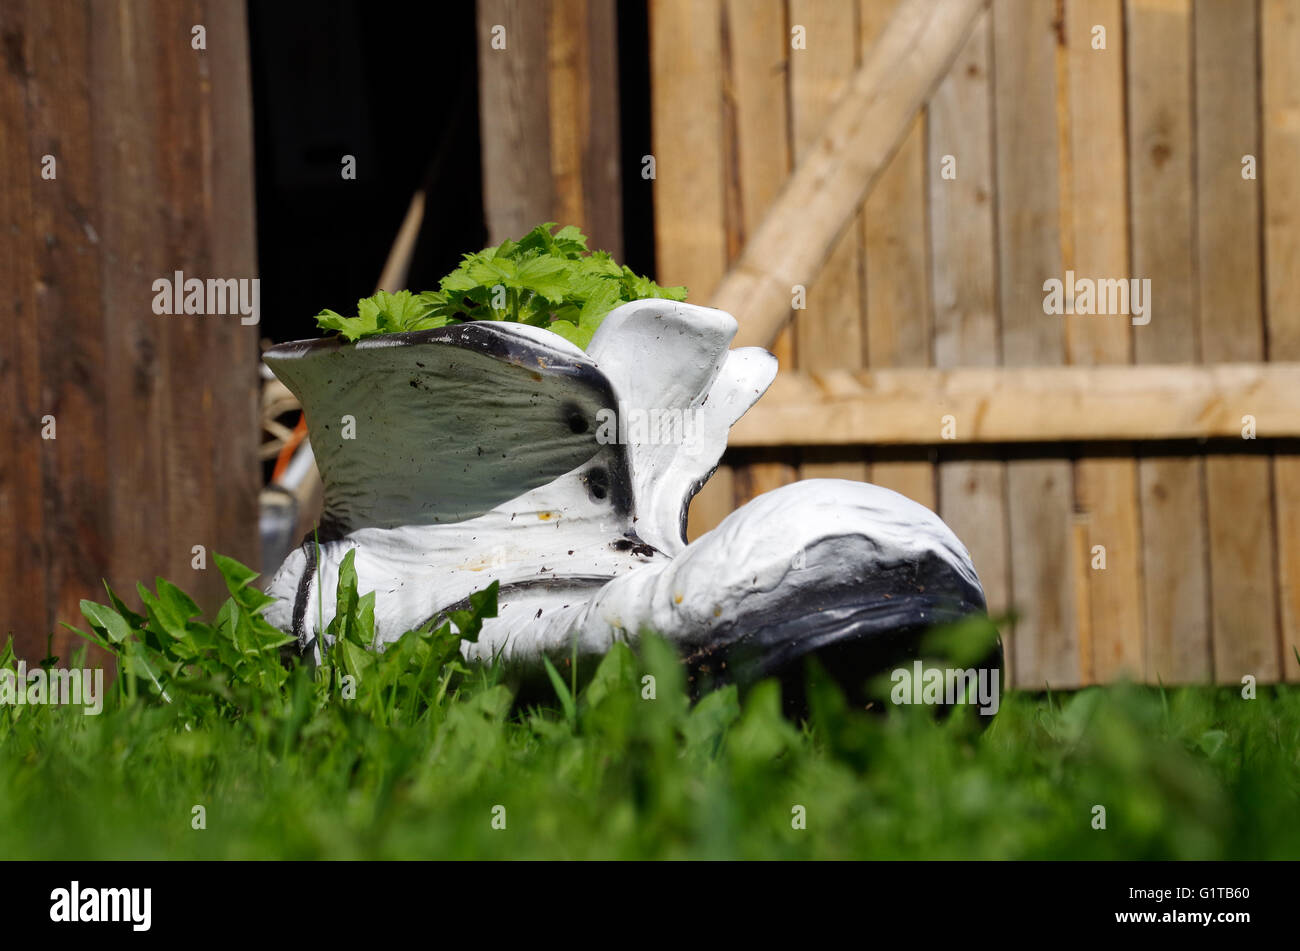 Boot shaped flowerpot in the grass in the background of wooden farm doors - Stock Image